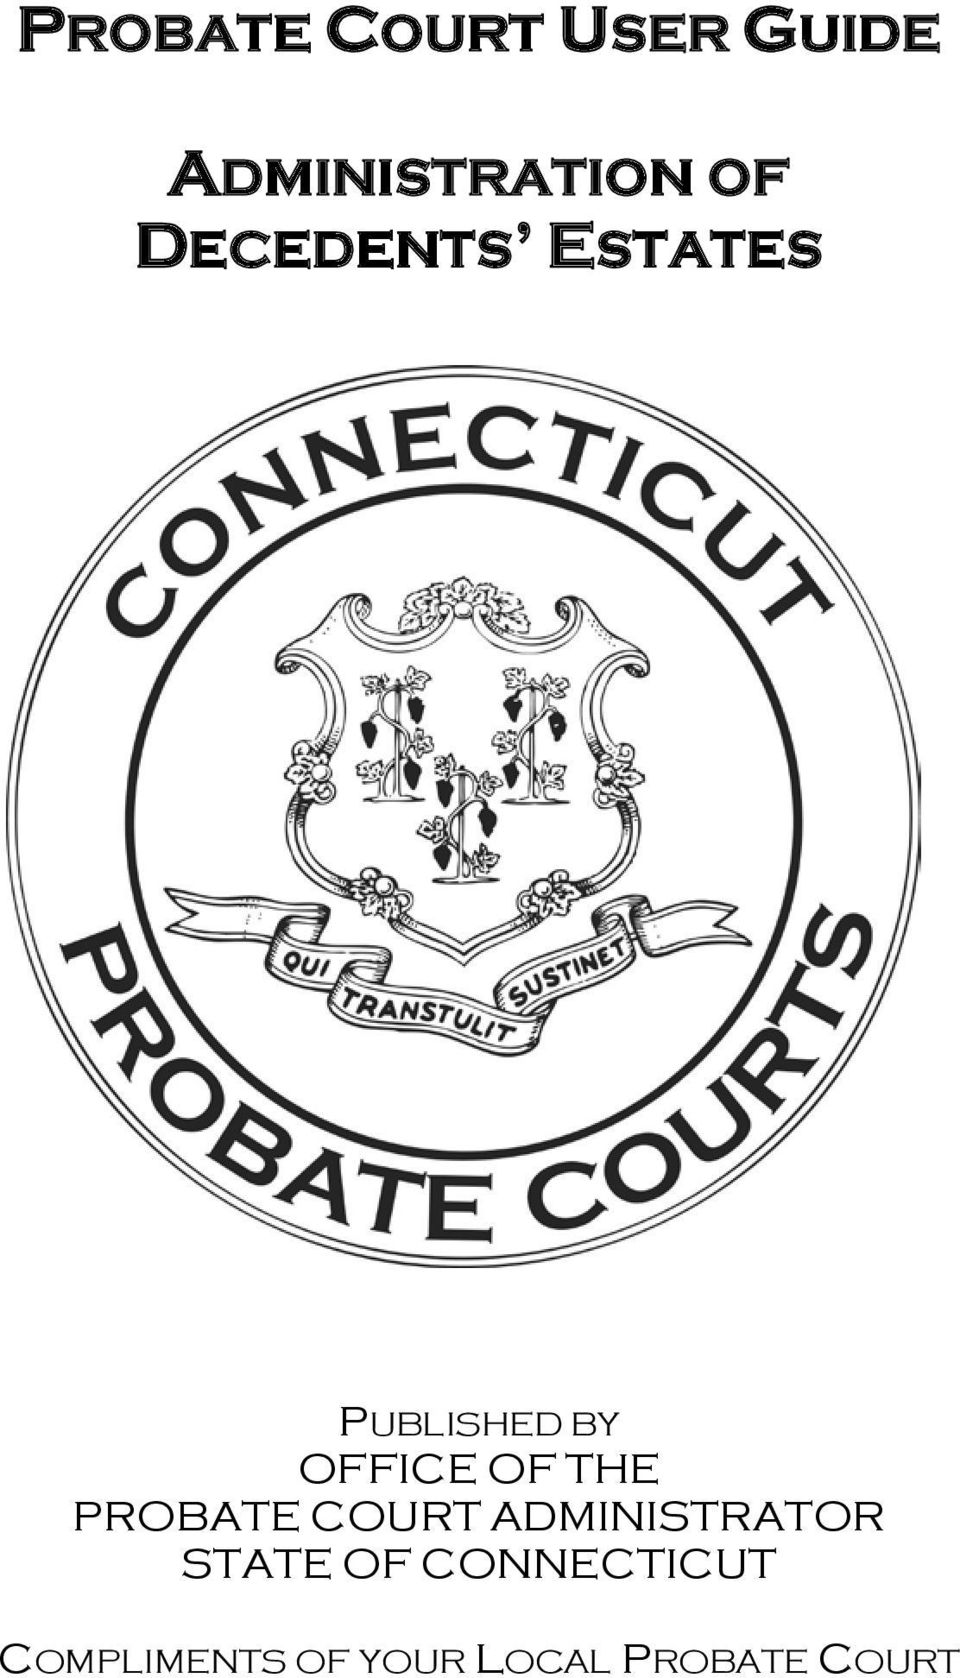 THE PROBATE COURT ADMINISTRATOR STATE OF